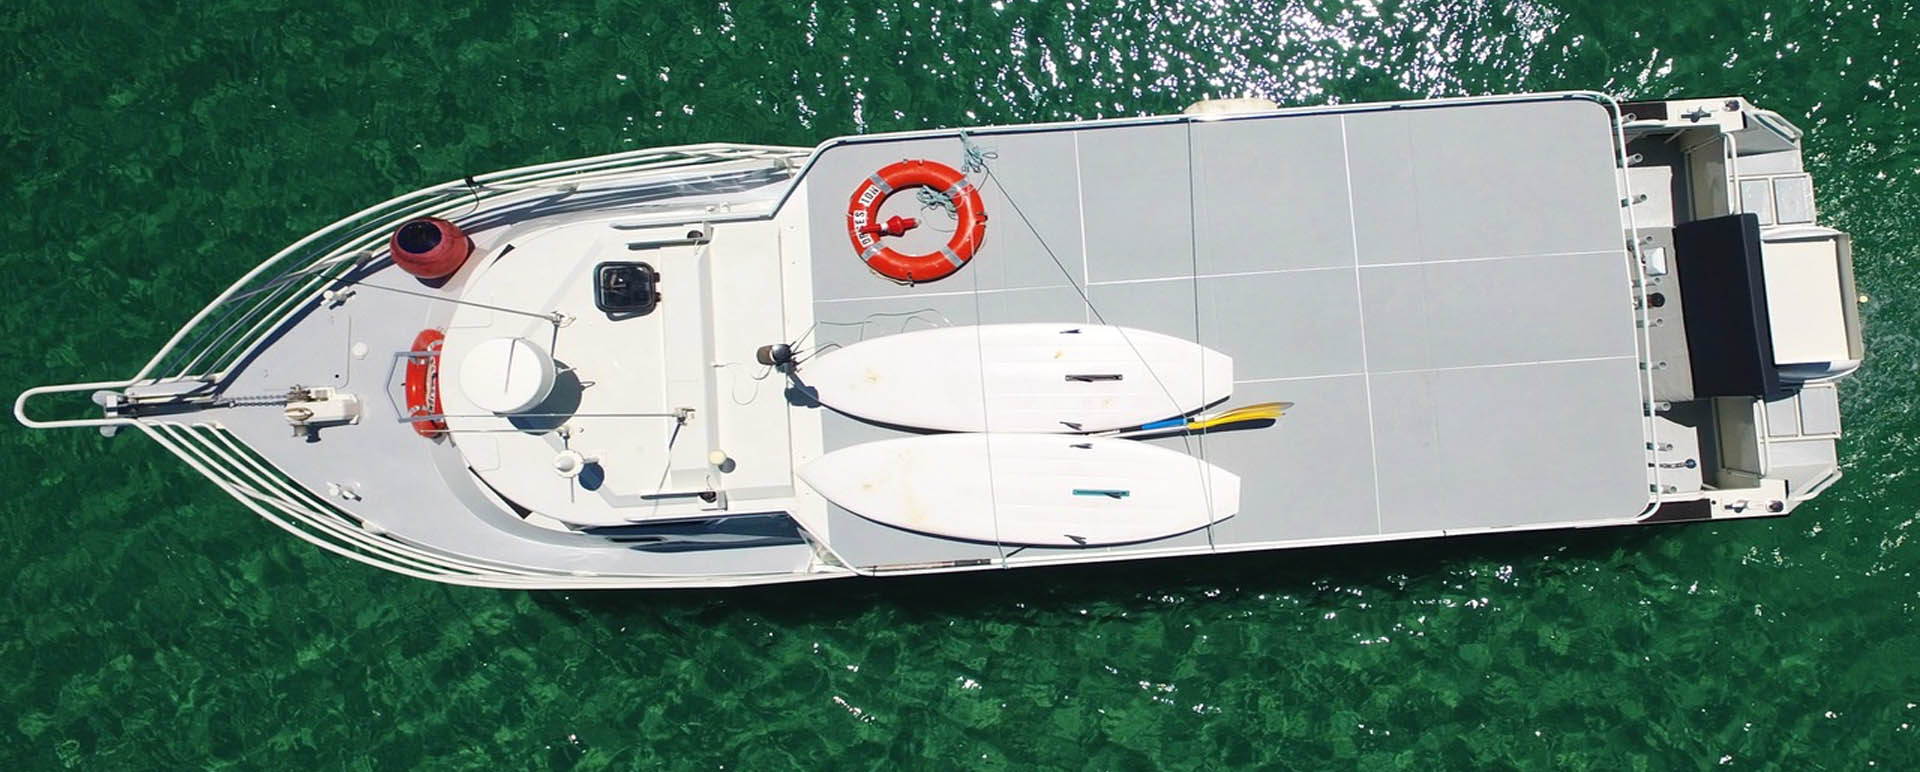 OBSESSION AERIAL SHOT PERTH BOAT CHARTER